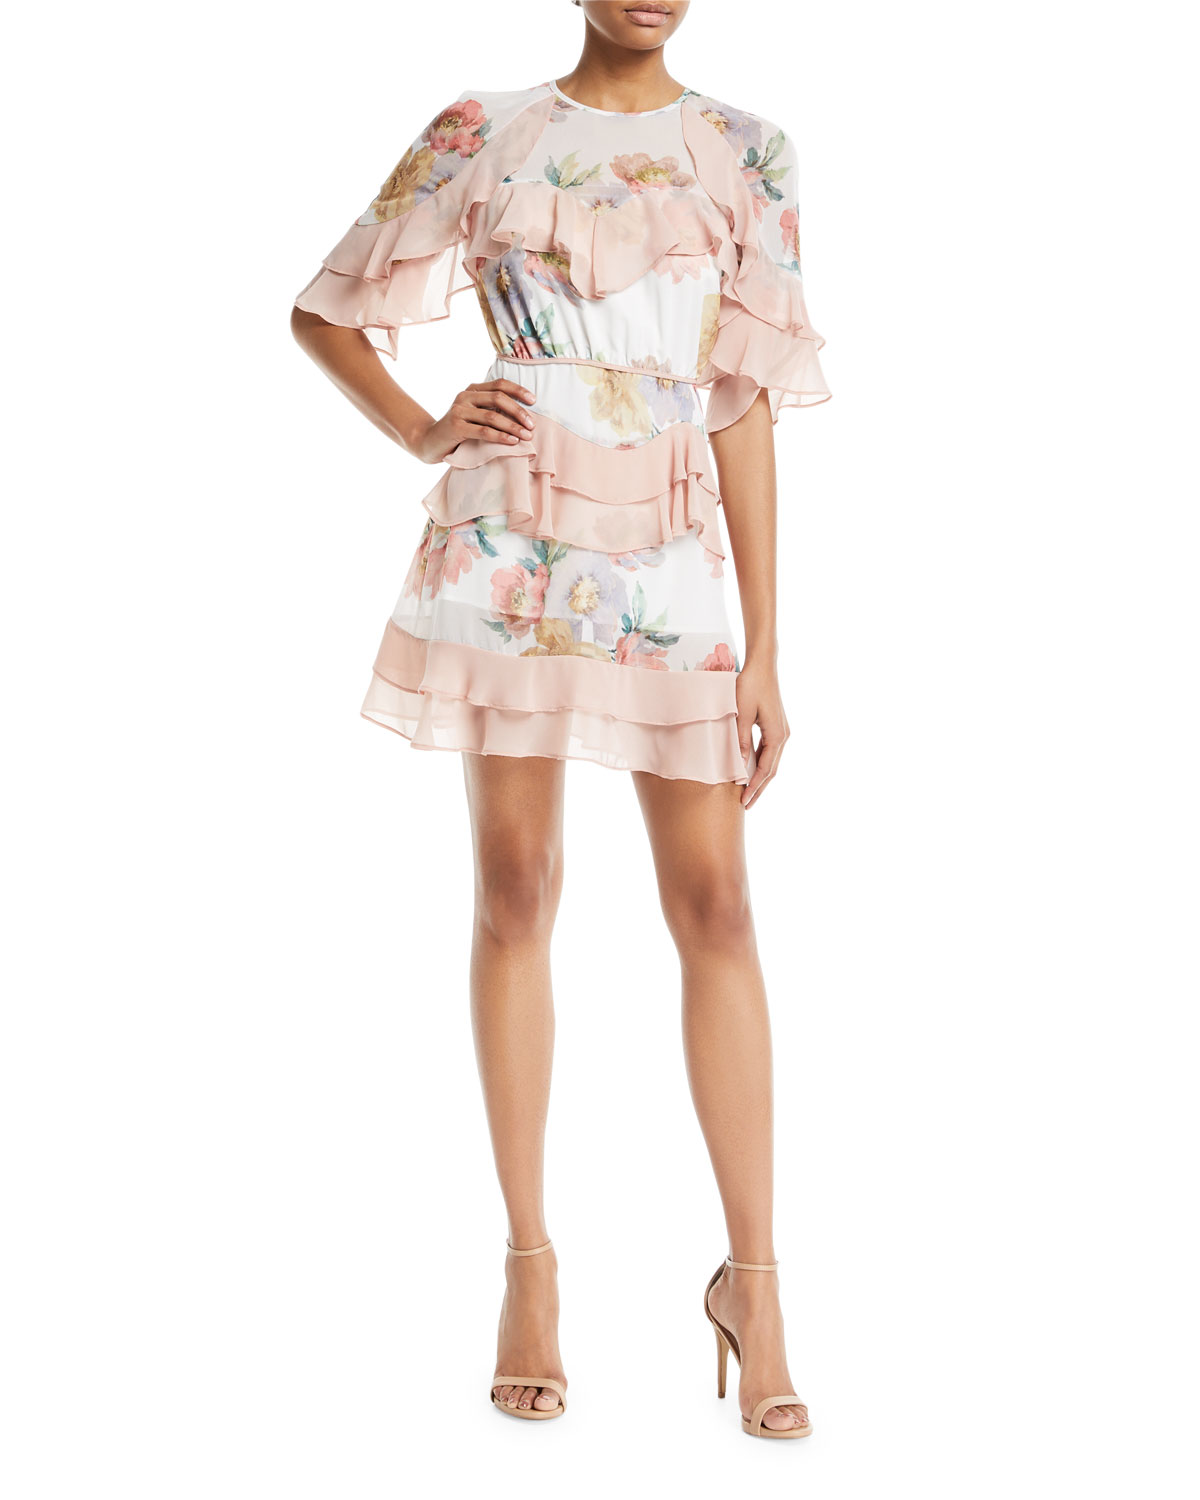 Maison Darcy La Maison Talulah Darcy Floral Print Mini Dress With